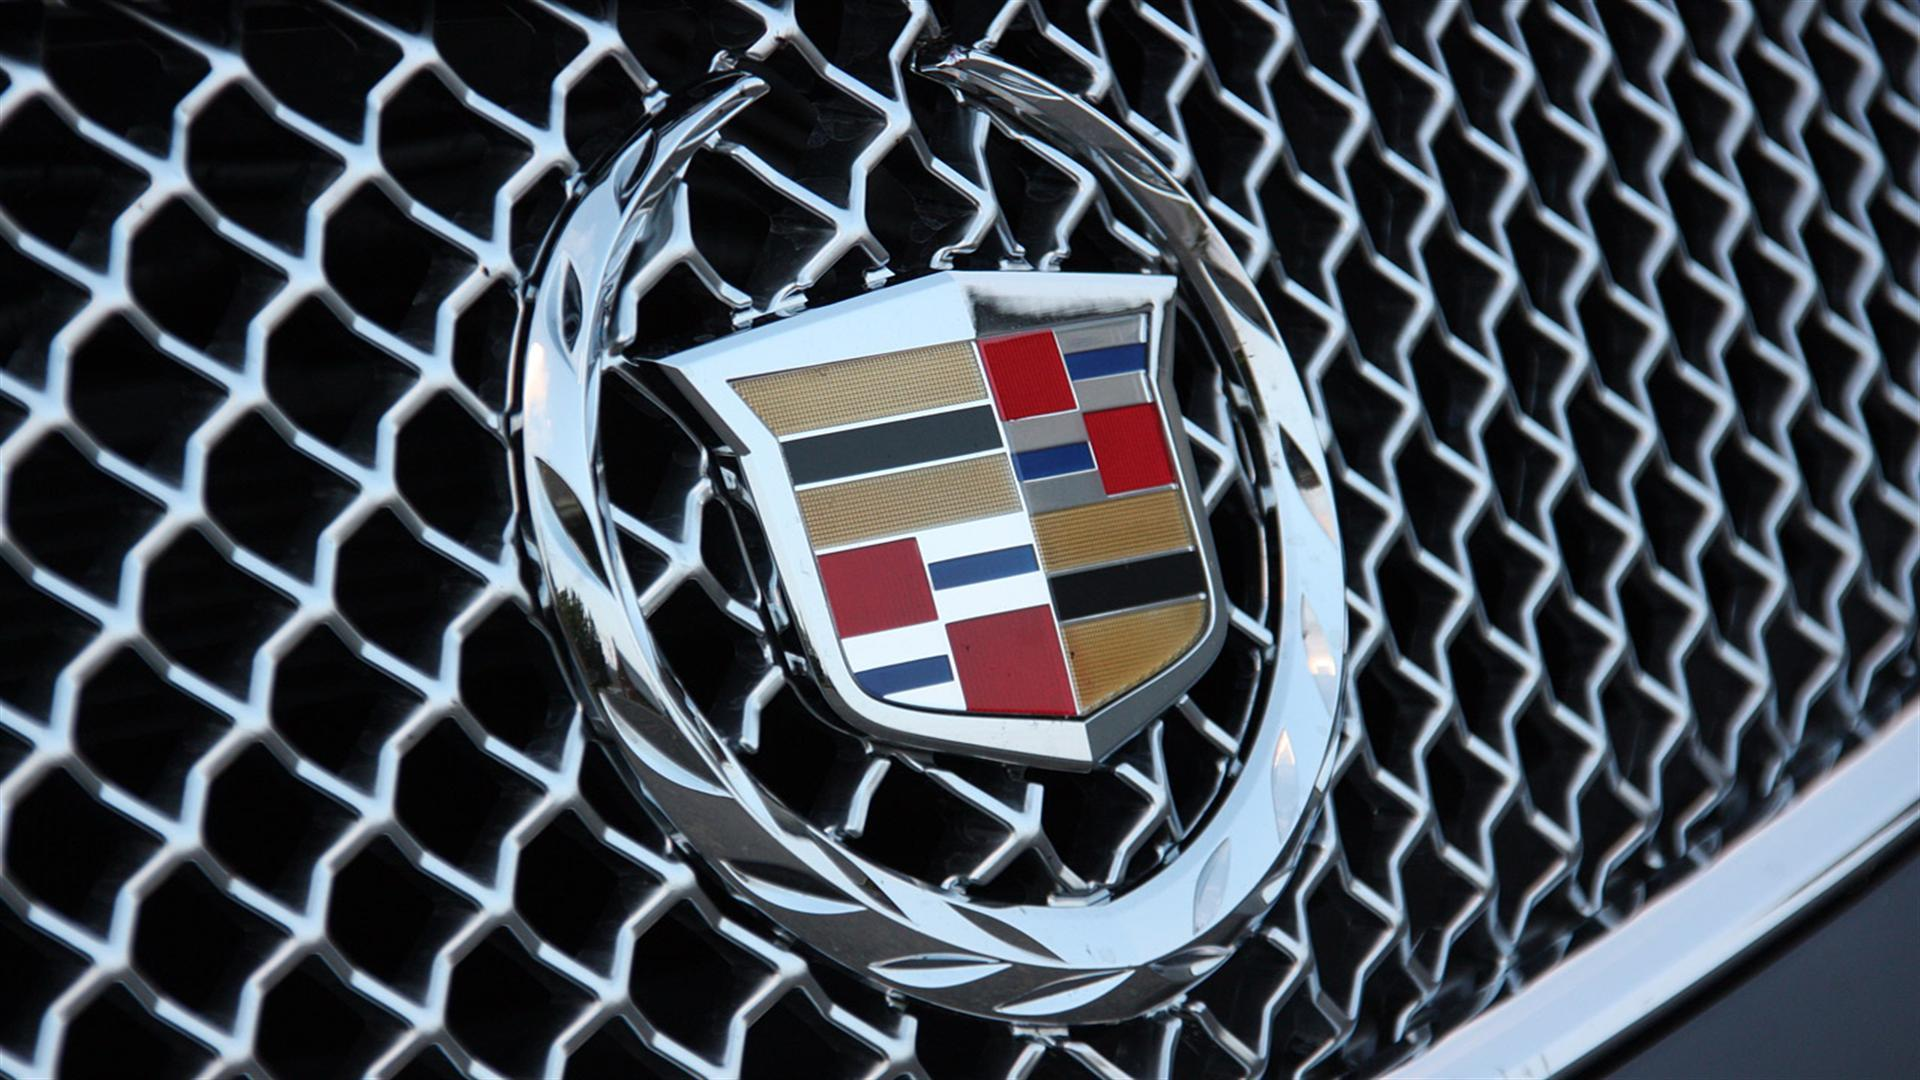 Cadillac Logo Desktop Wallpapers 933 1920x1080 px ~ PickyWallpapers